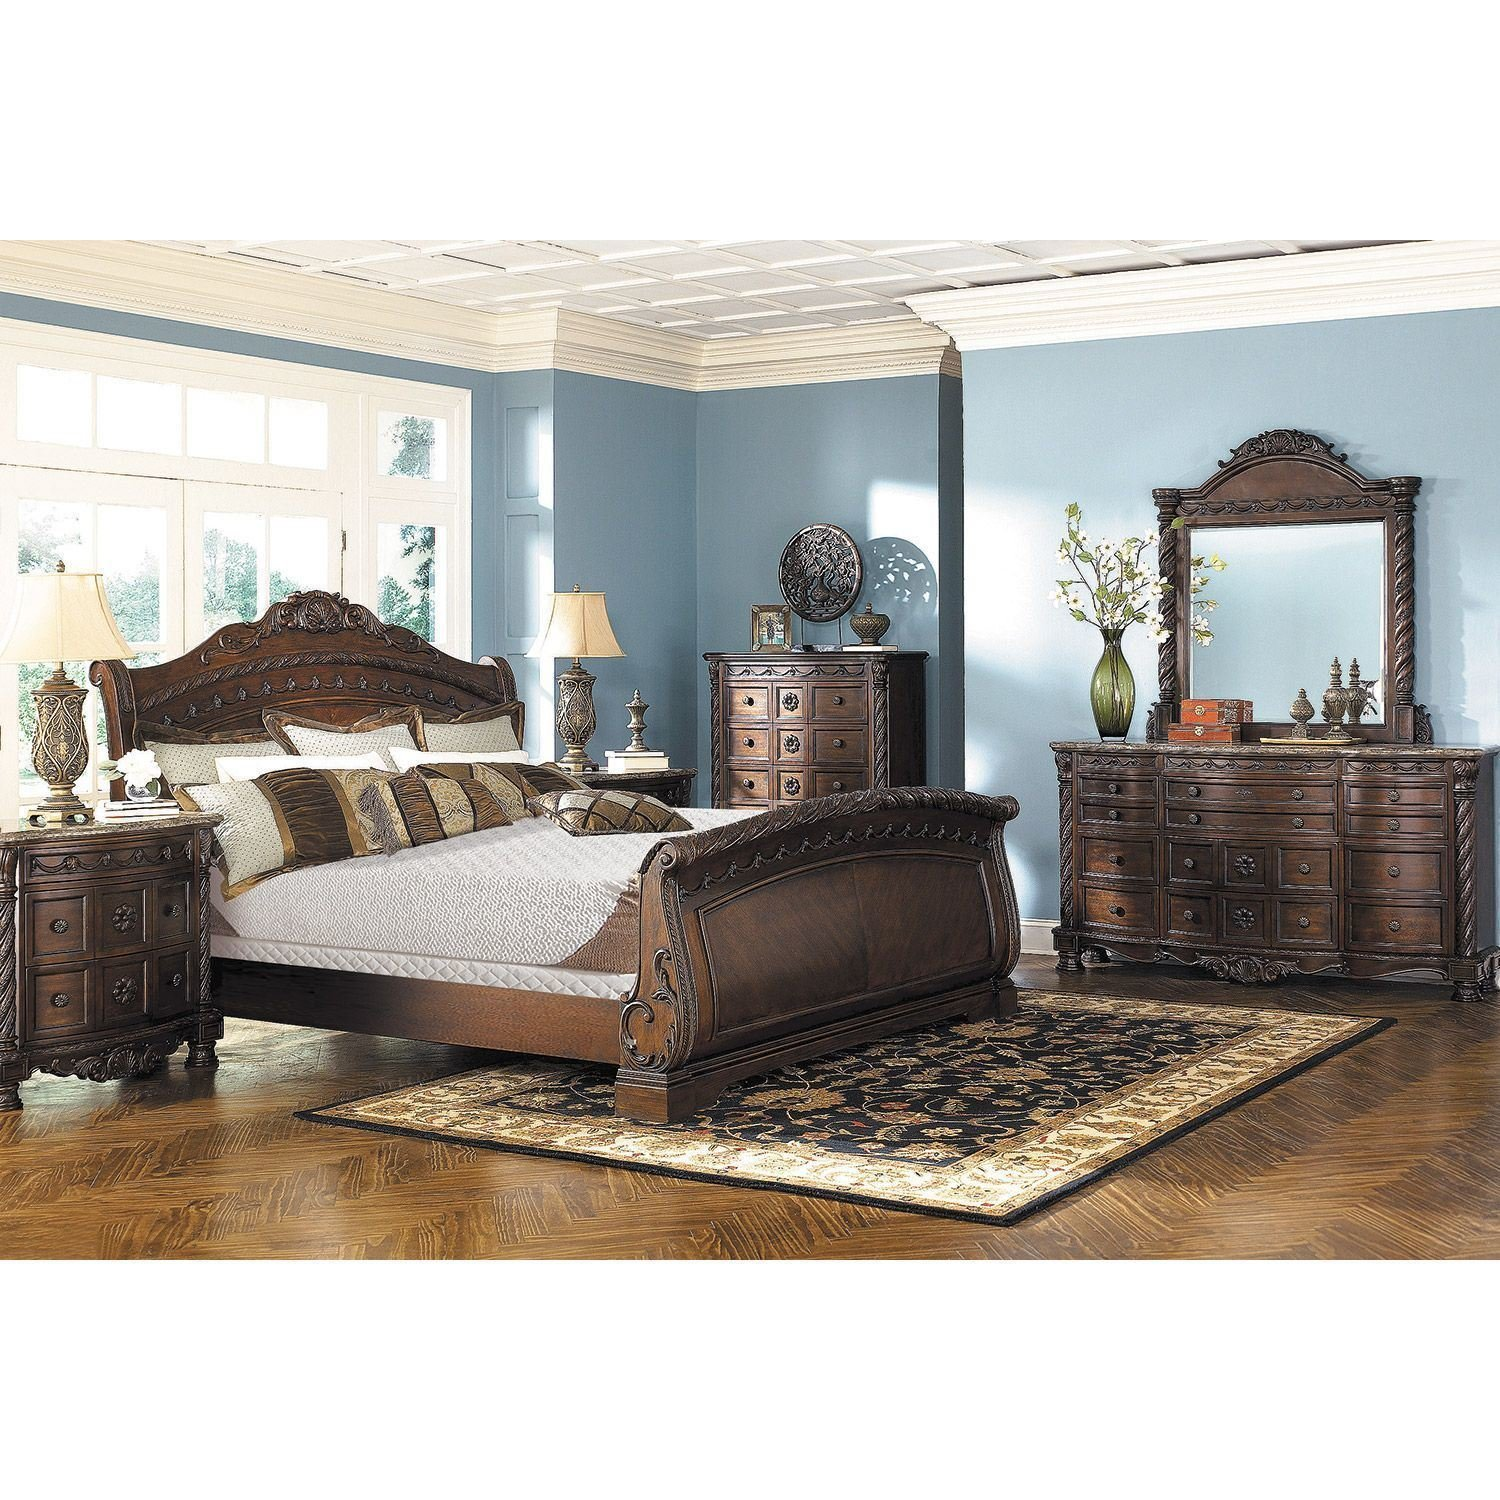 Best North Shore 5 Piece Bedroom Set B553 131 36 46 Kbed 193 With Pictures